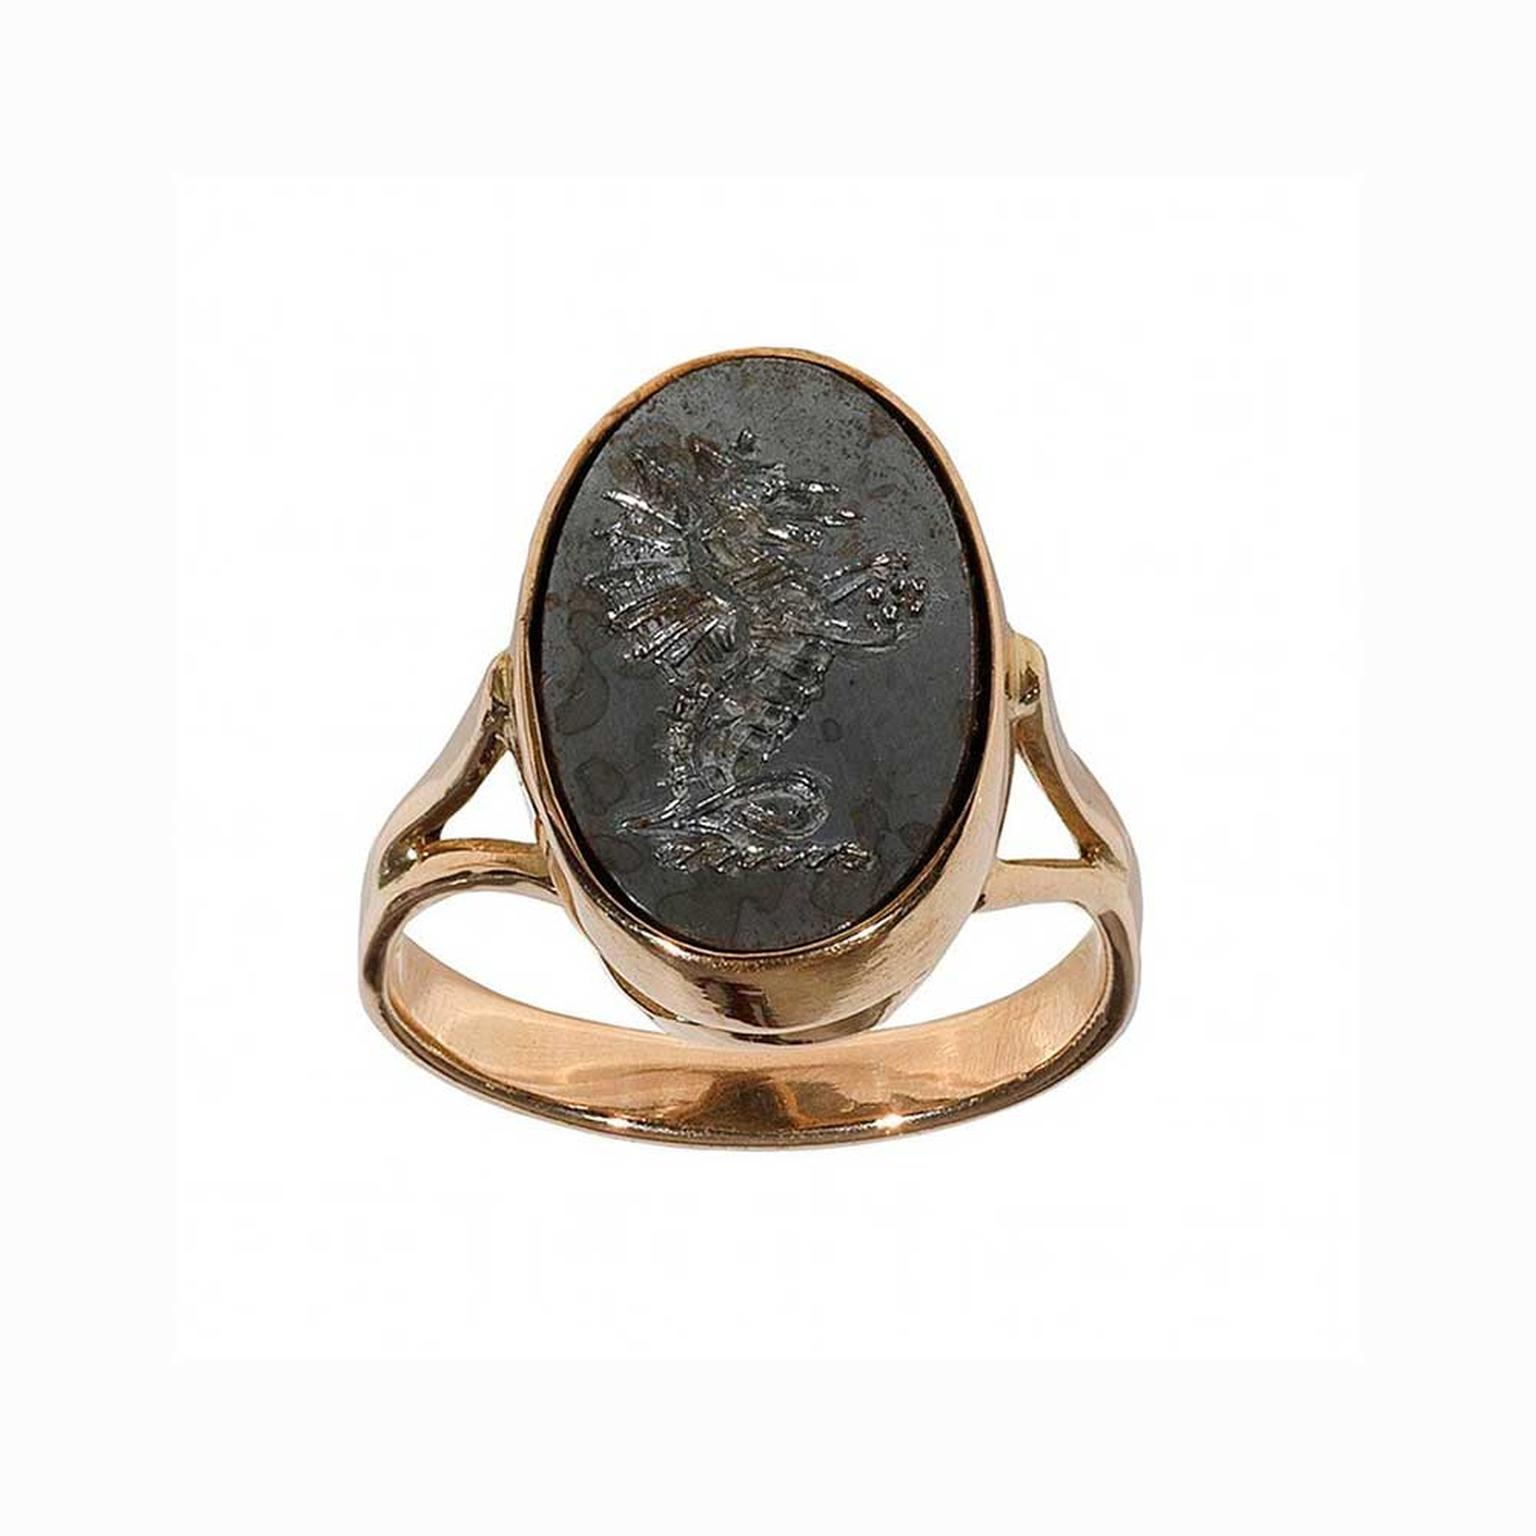 Bernardo Antique & Estate Jewelry gold and steel signet ring